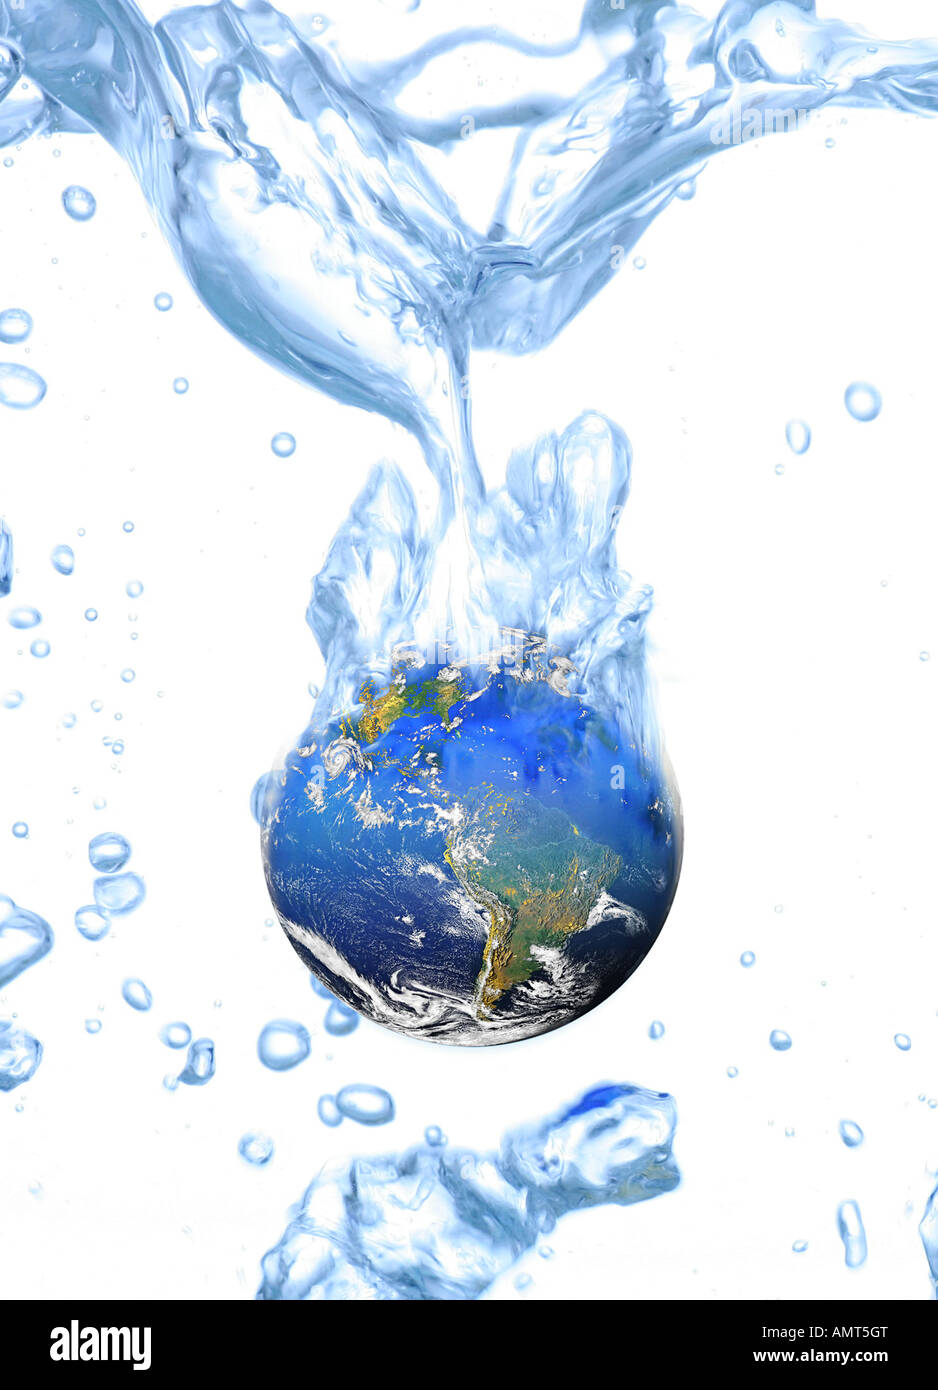 stop global warming cool the earth - Stock Image